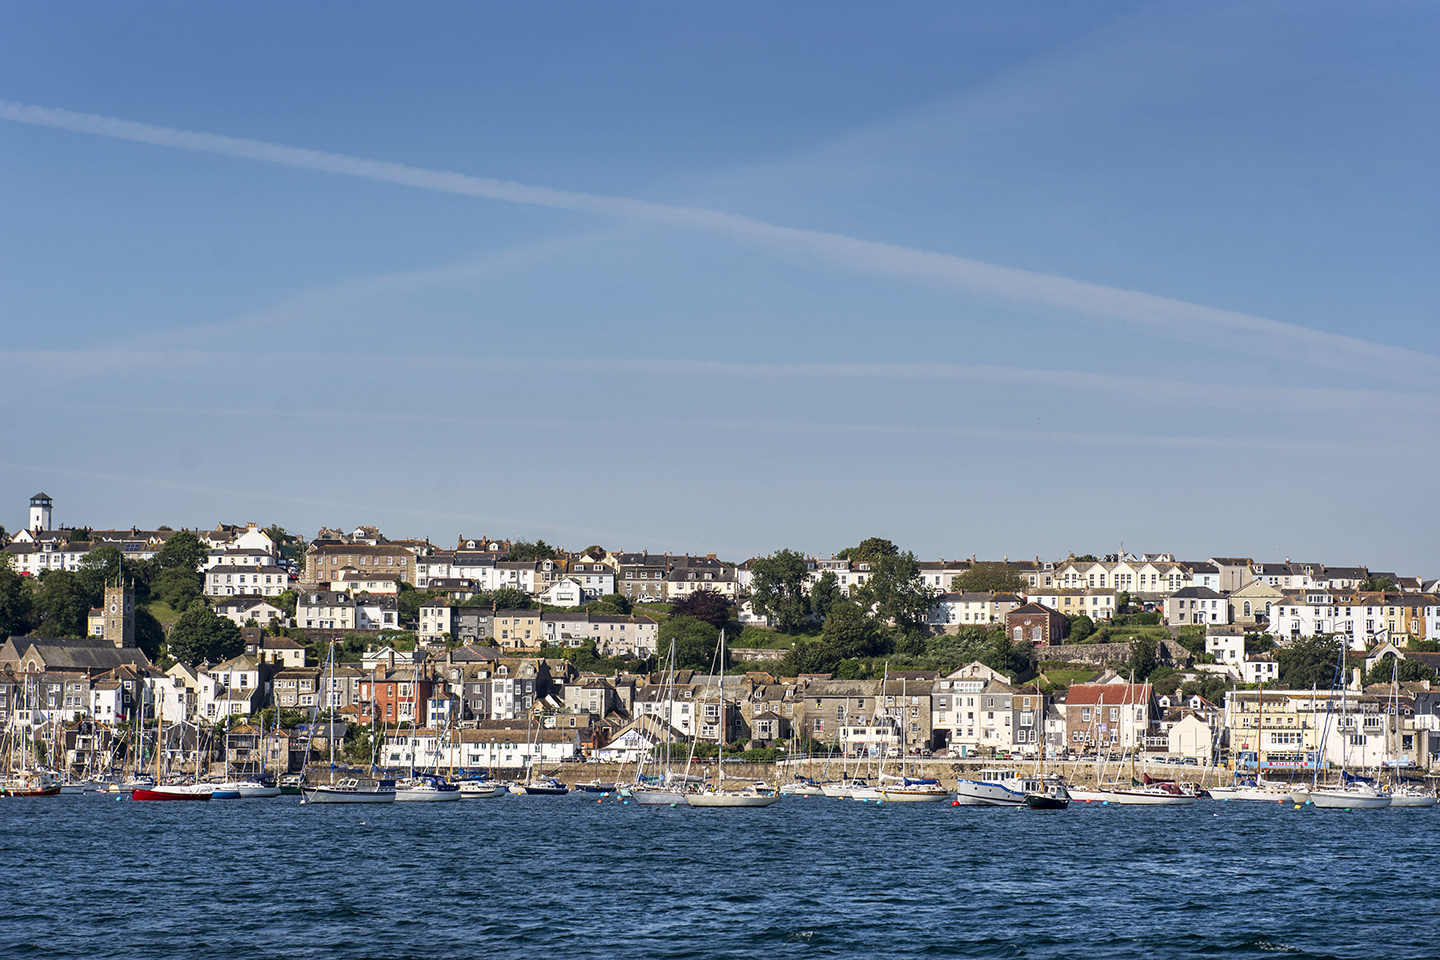 Houses in Falmouth, Cornwall viewed from the sea.